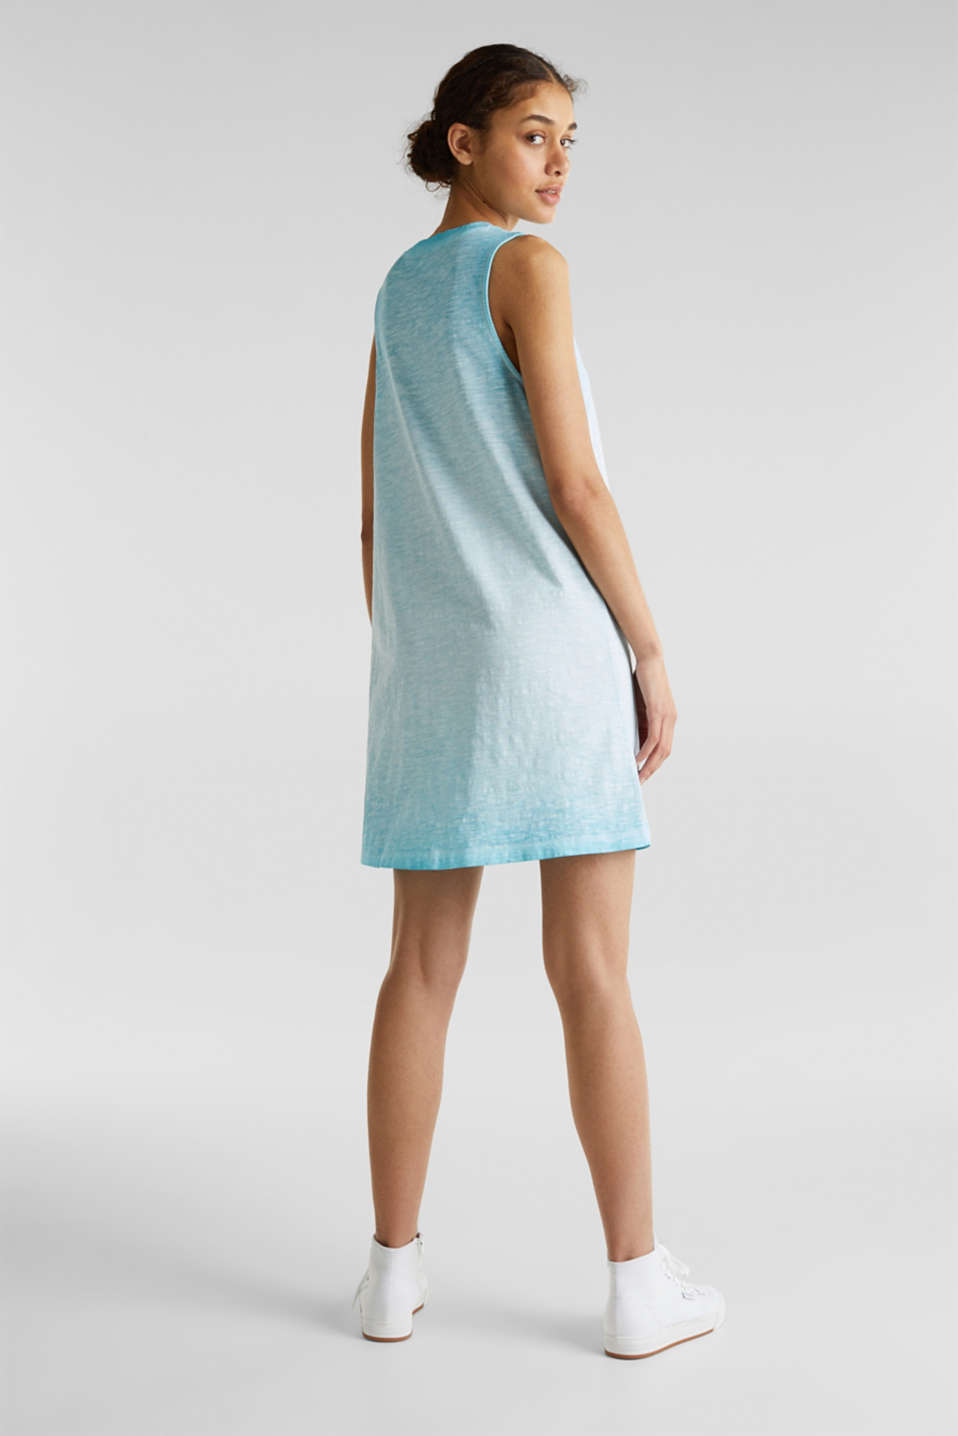 Cotton jersey dress, TURQUOISE, detail image number 2